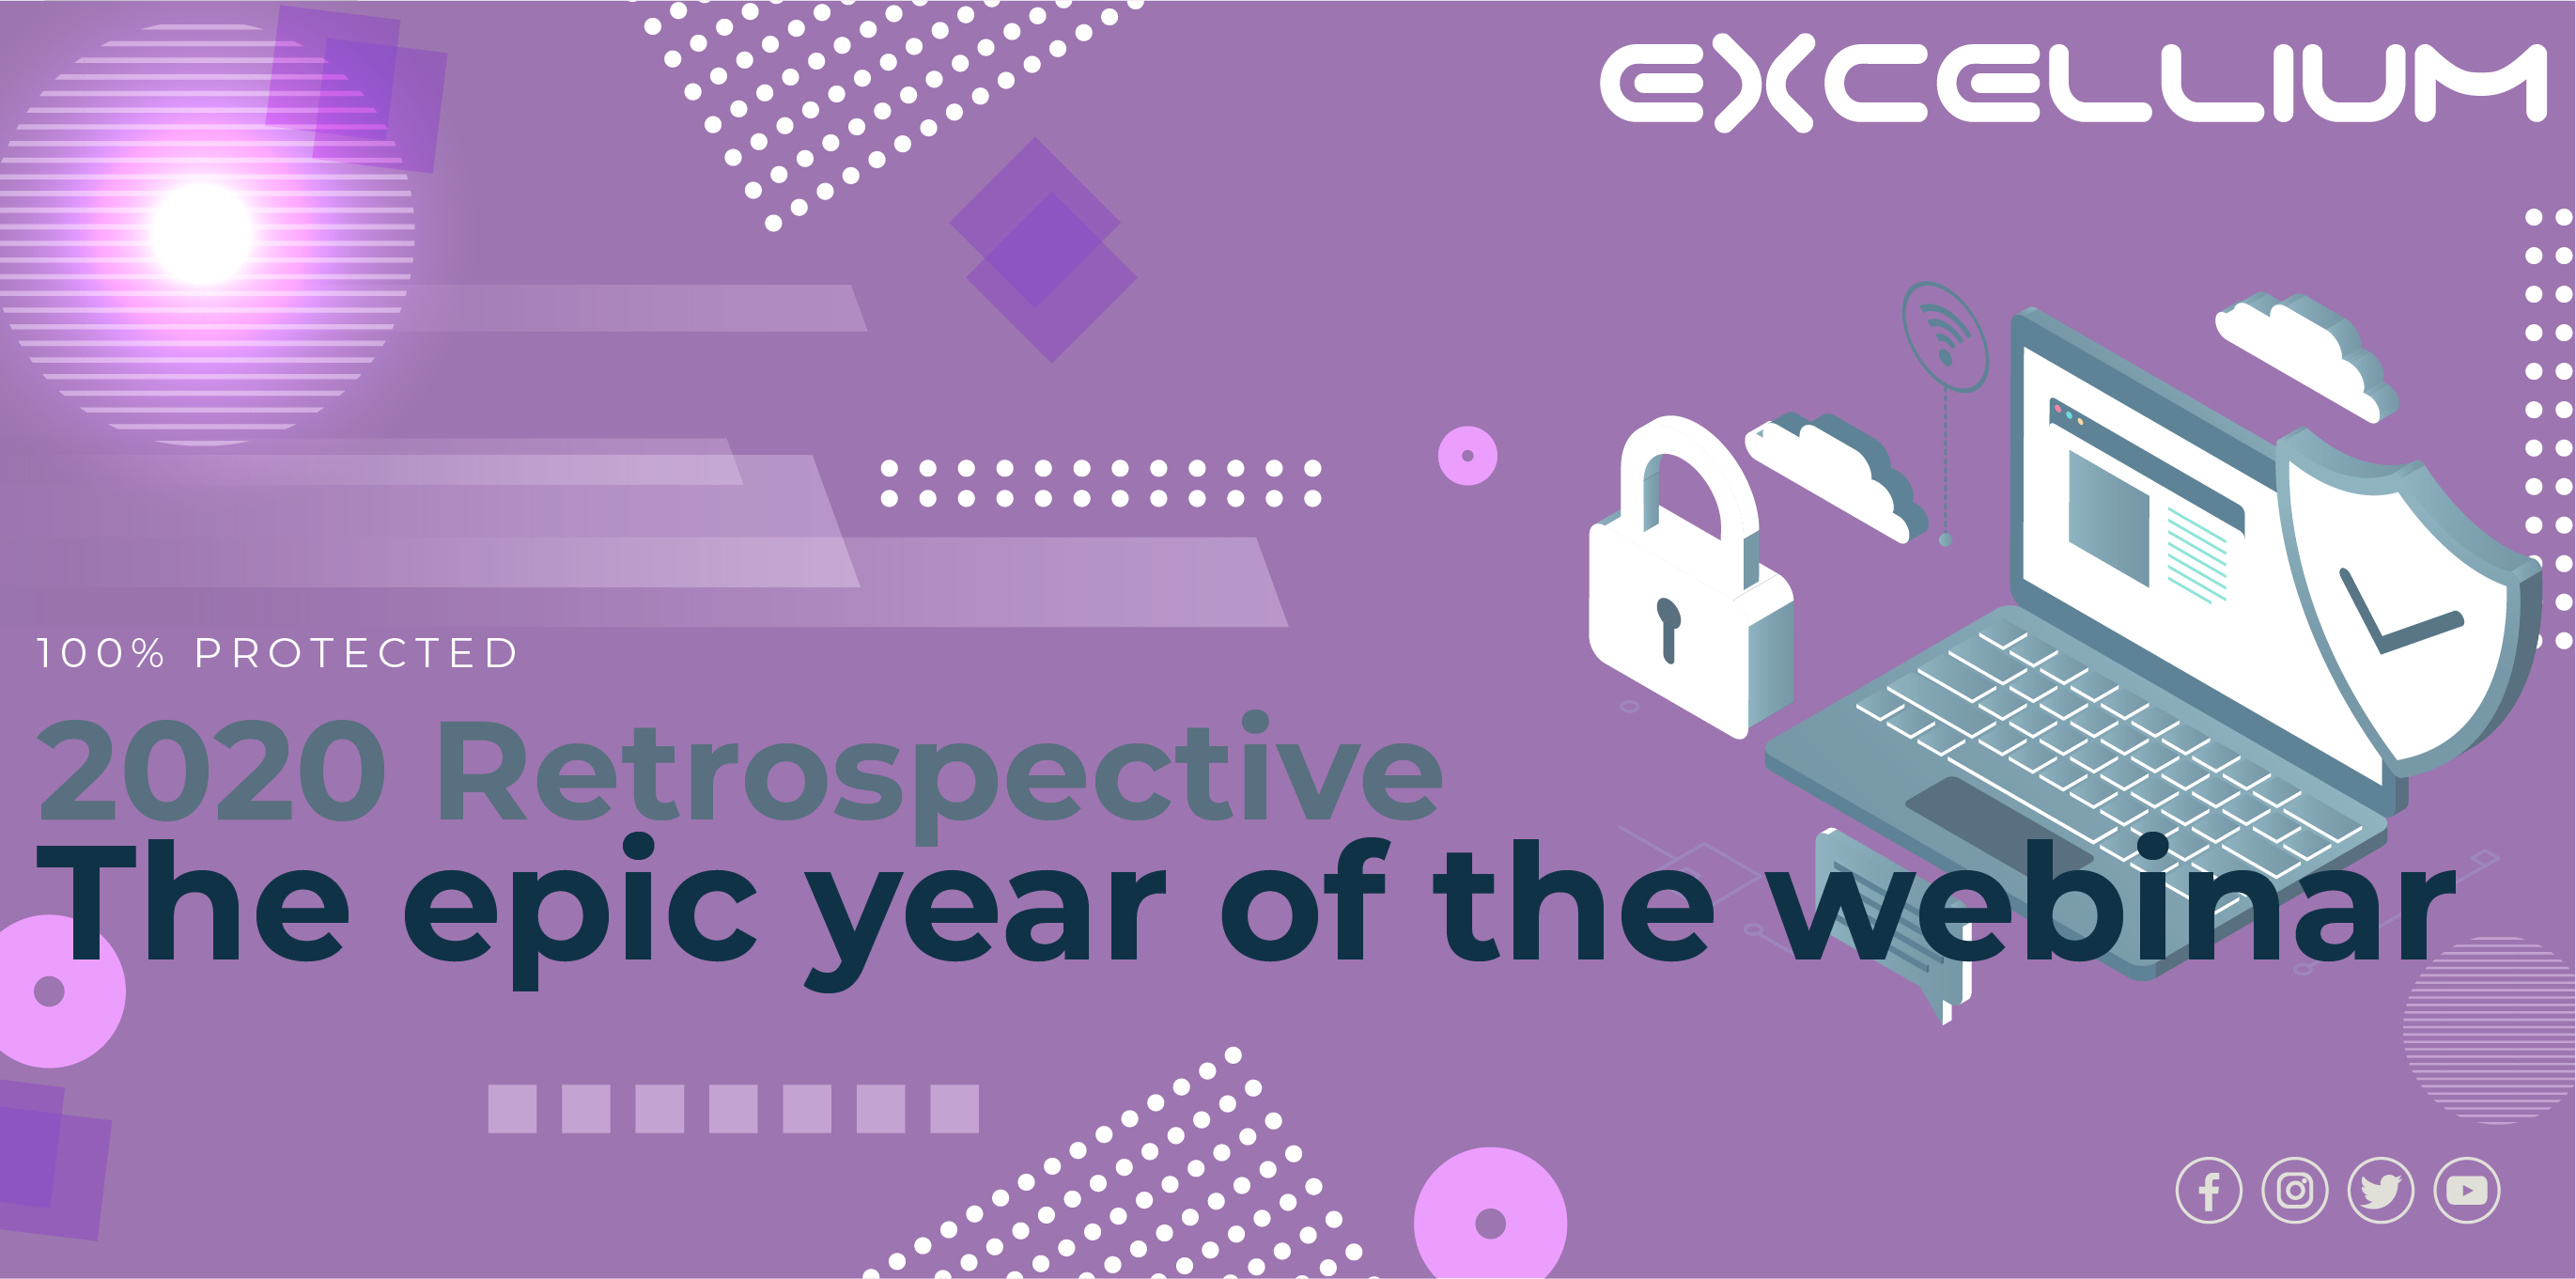 """The epic year of the webinar"" banner"